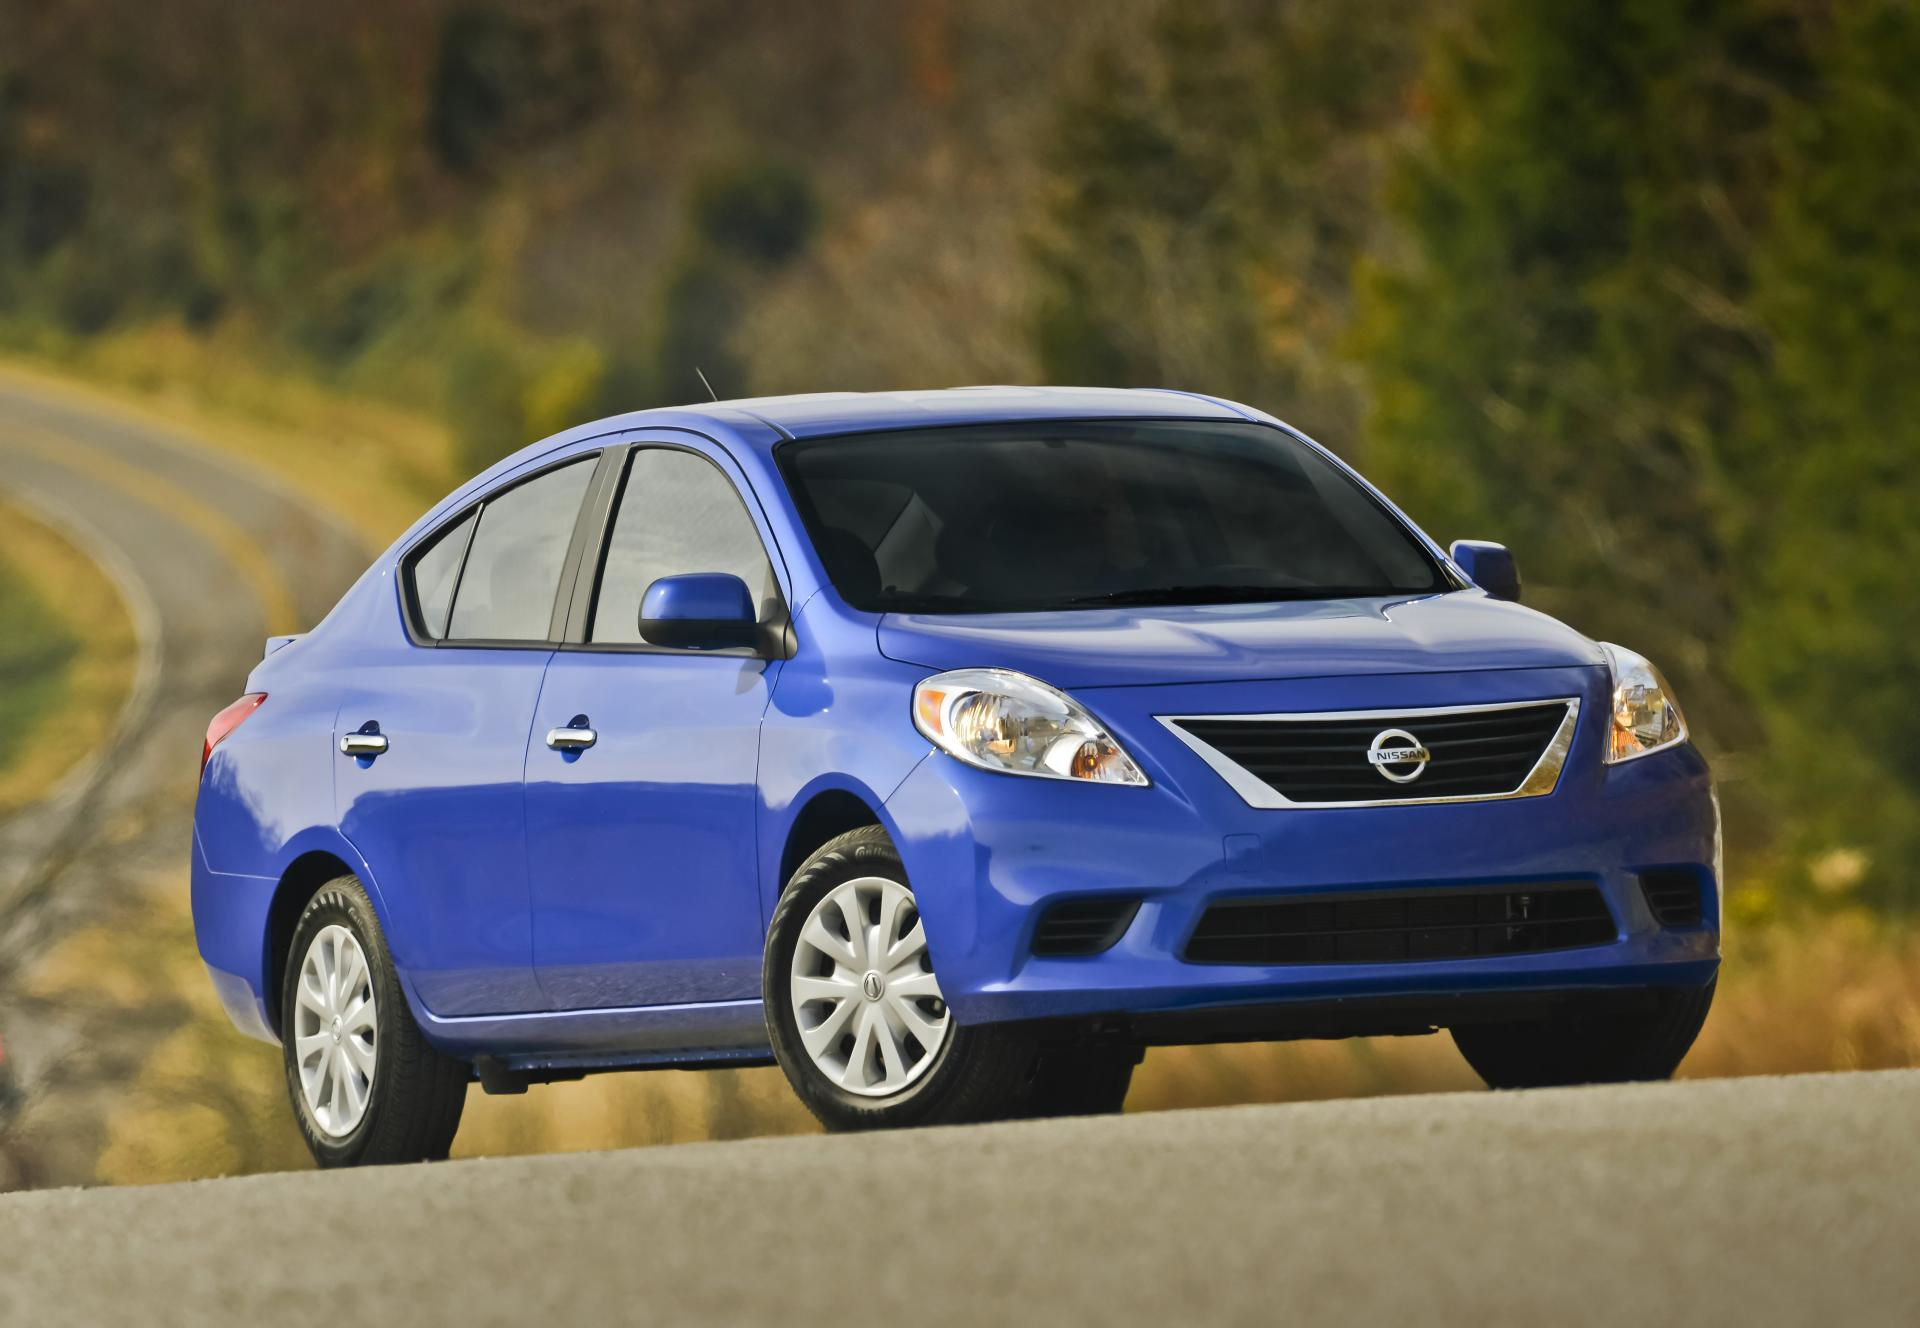 2014 nissan versa technical specifications and data. Black Bedroom Furniture Sets. Home Design Ideas